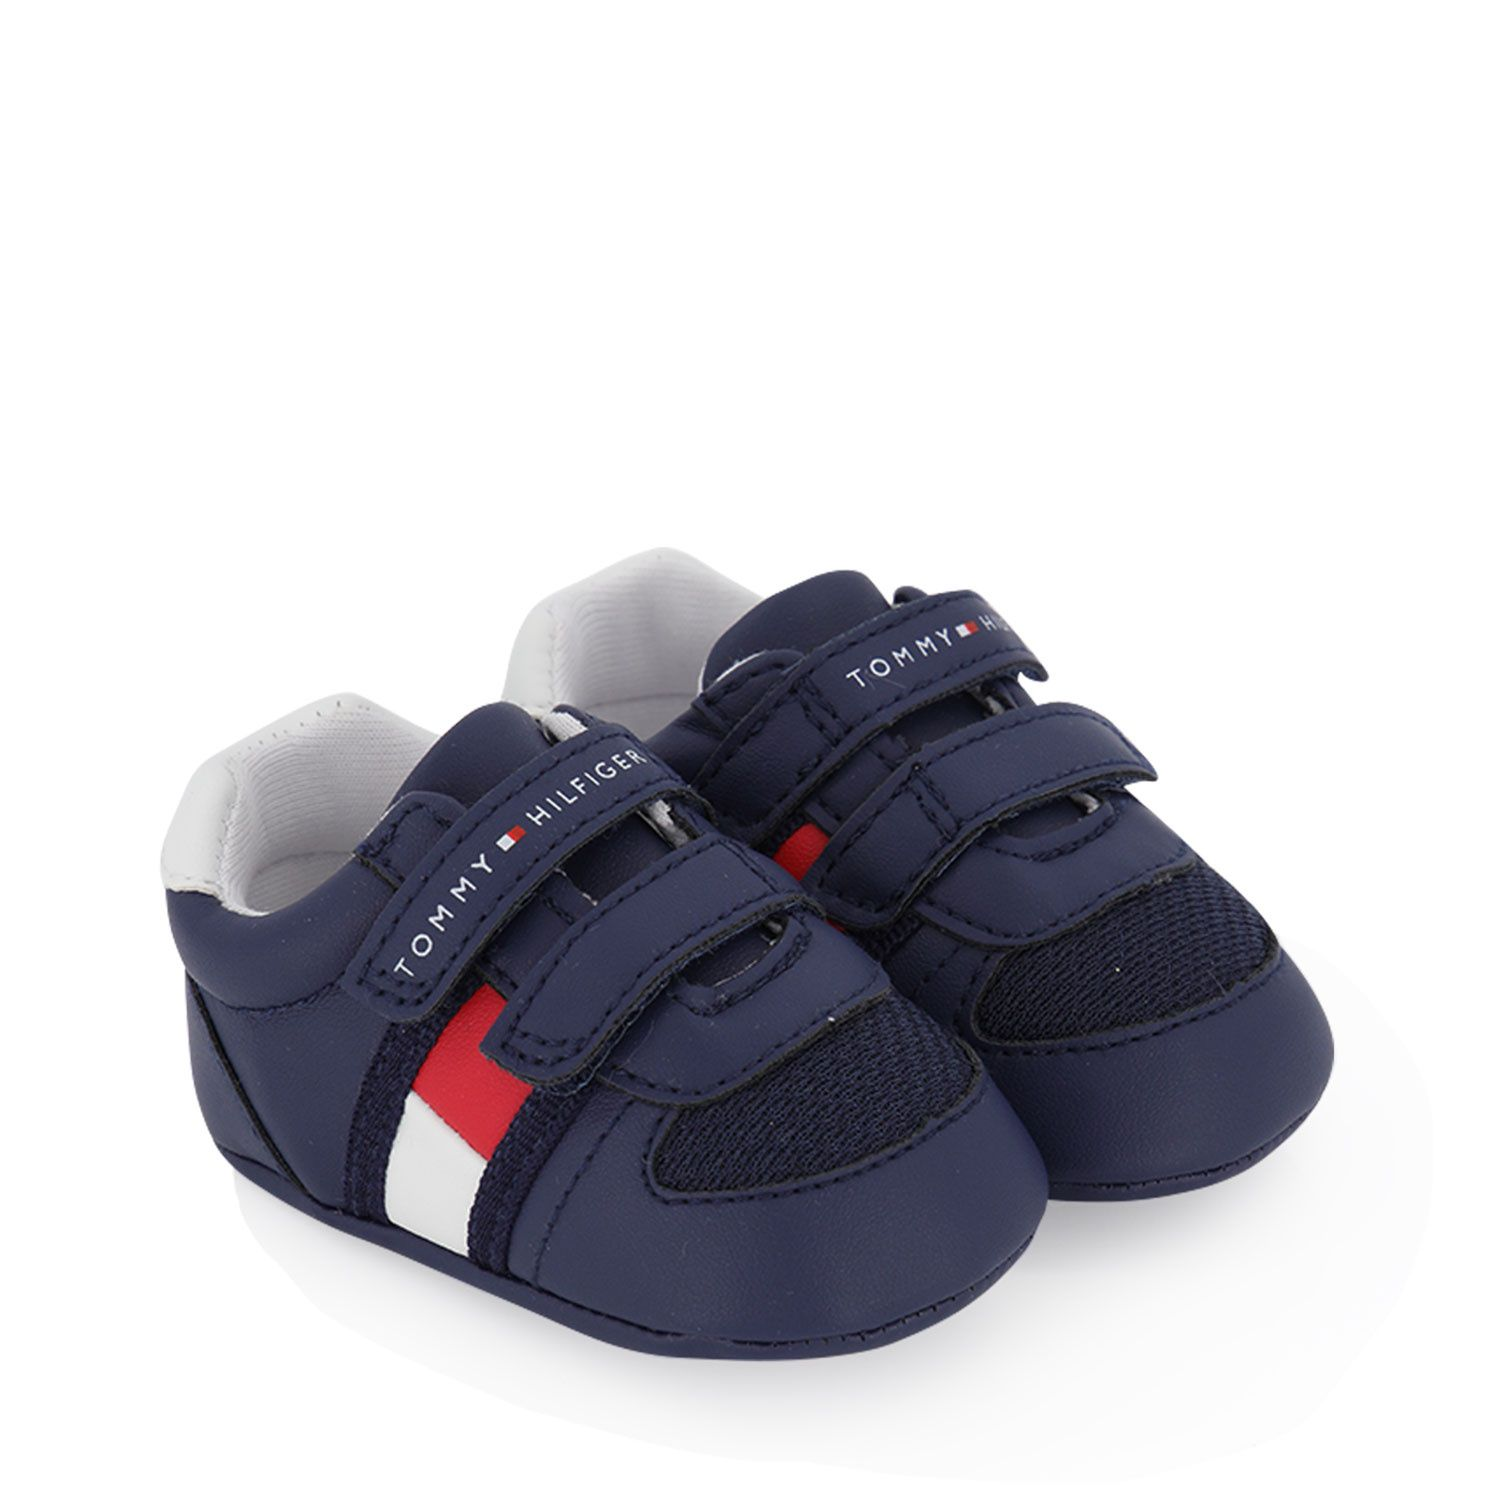 Picture of Tommy Hilfiger 30191 baby sneakers navy